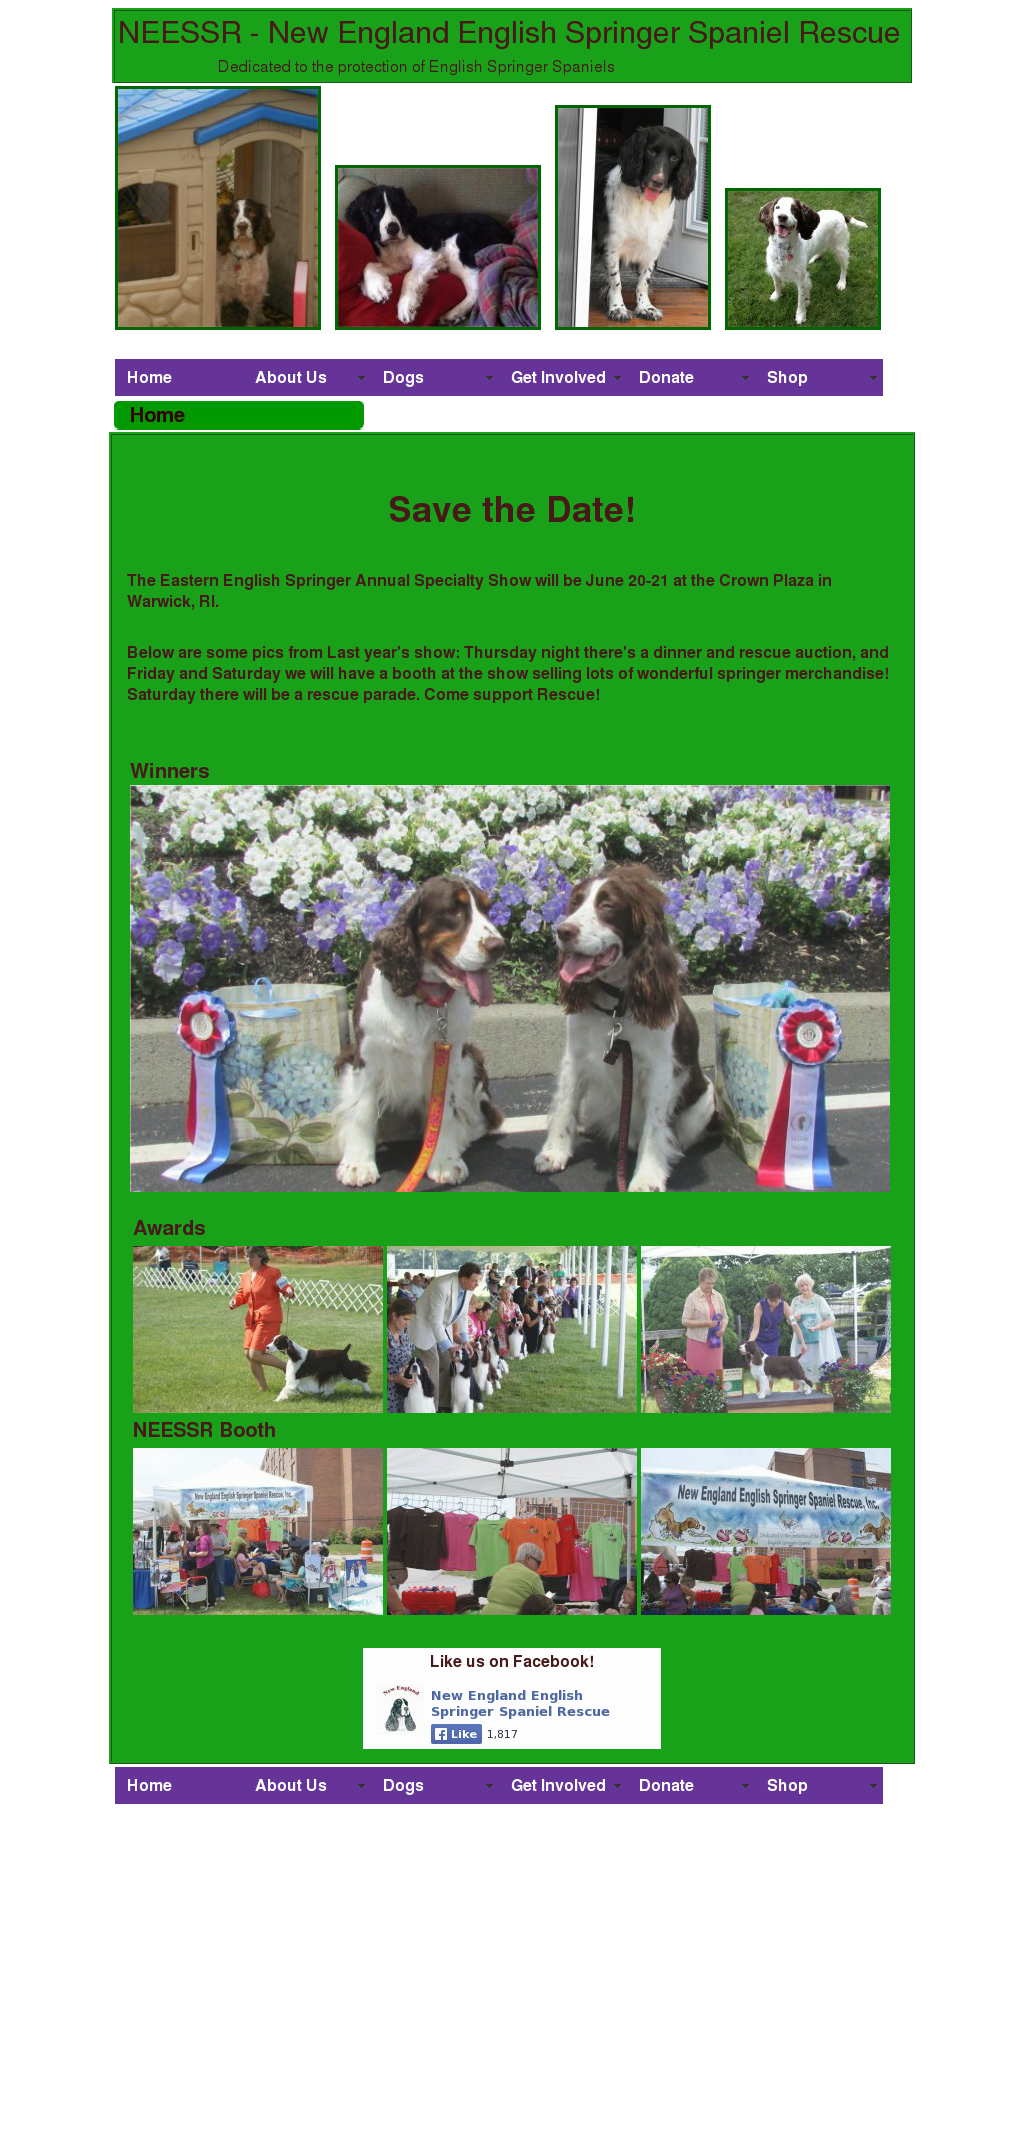 New England English Springer Spaniel Rescue Competitors